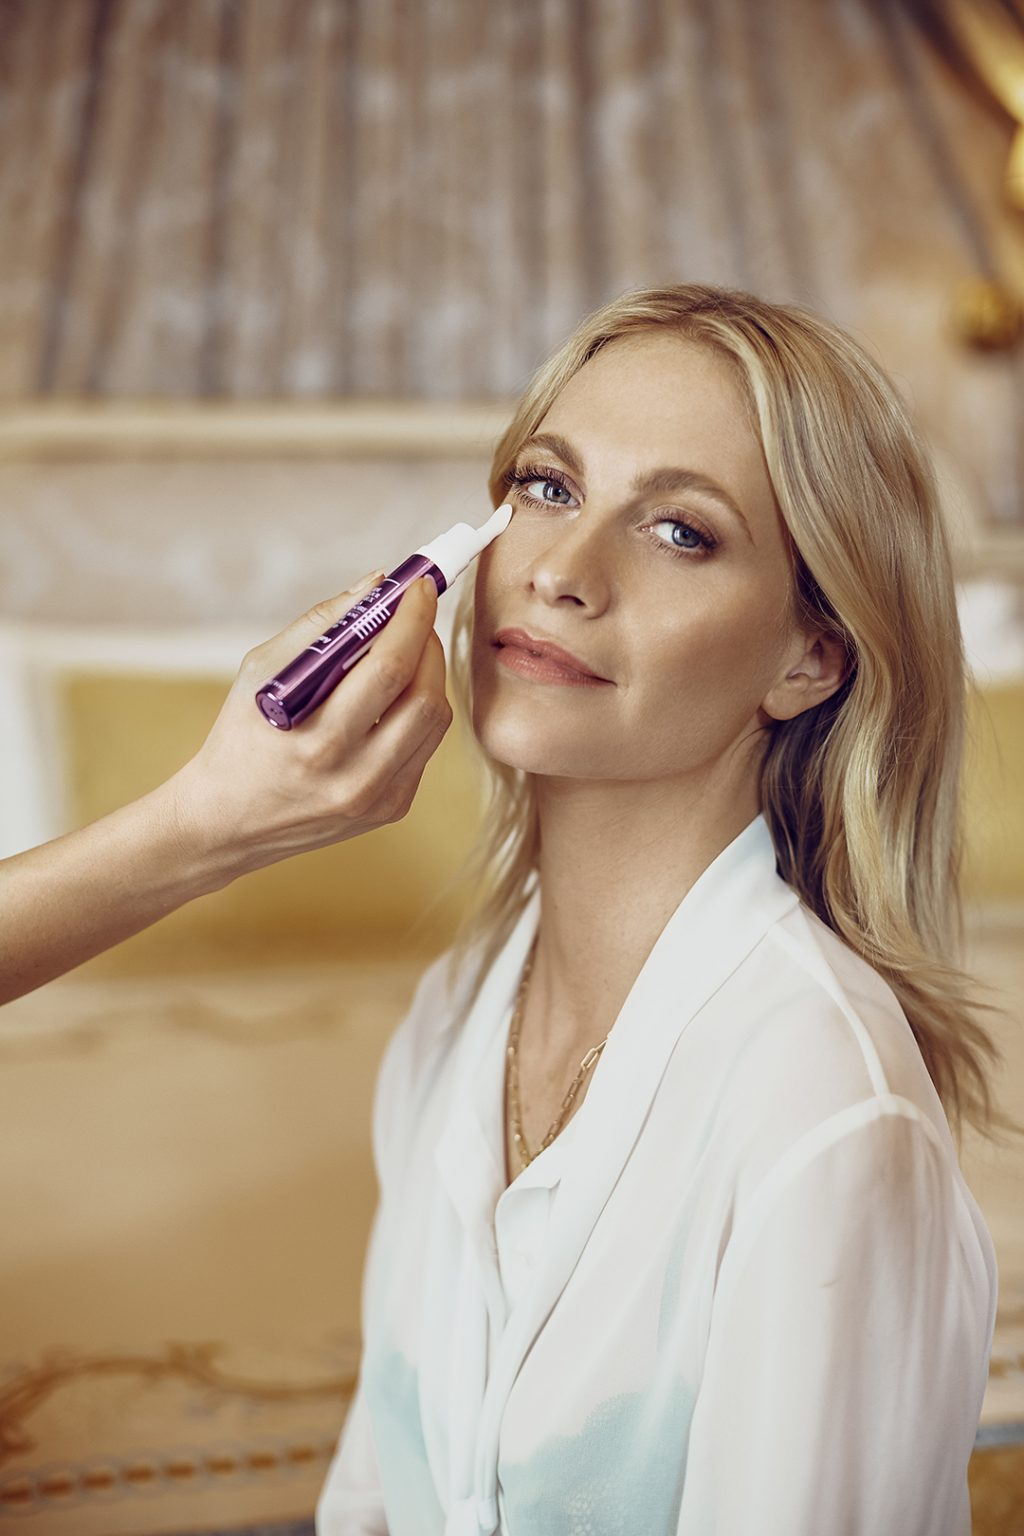 So This Is the Secret Behind Poppy Delevingne's (Perfect) Peepers